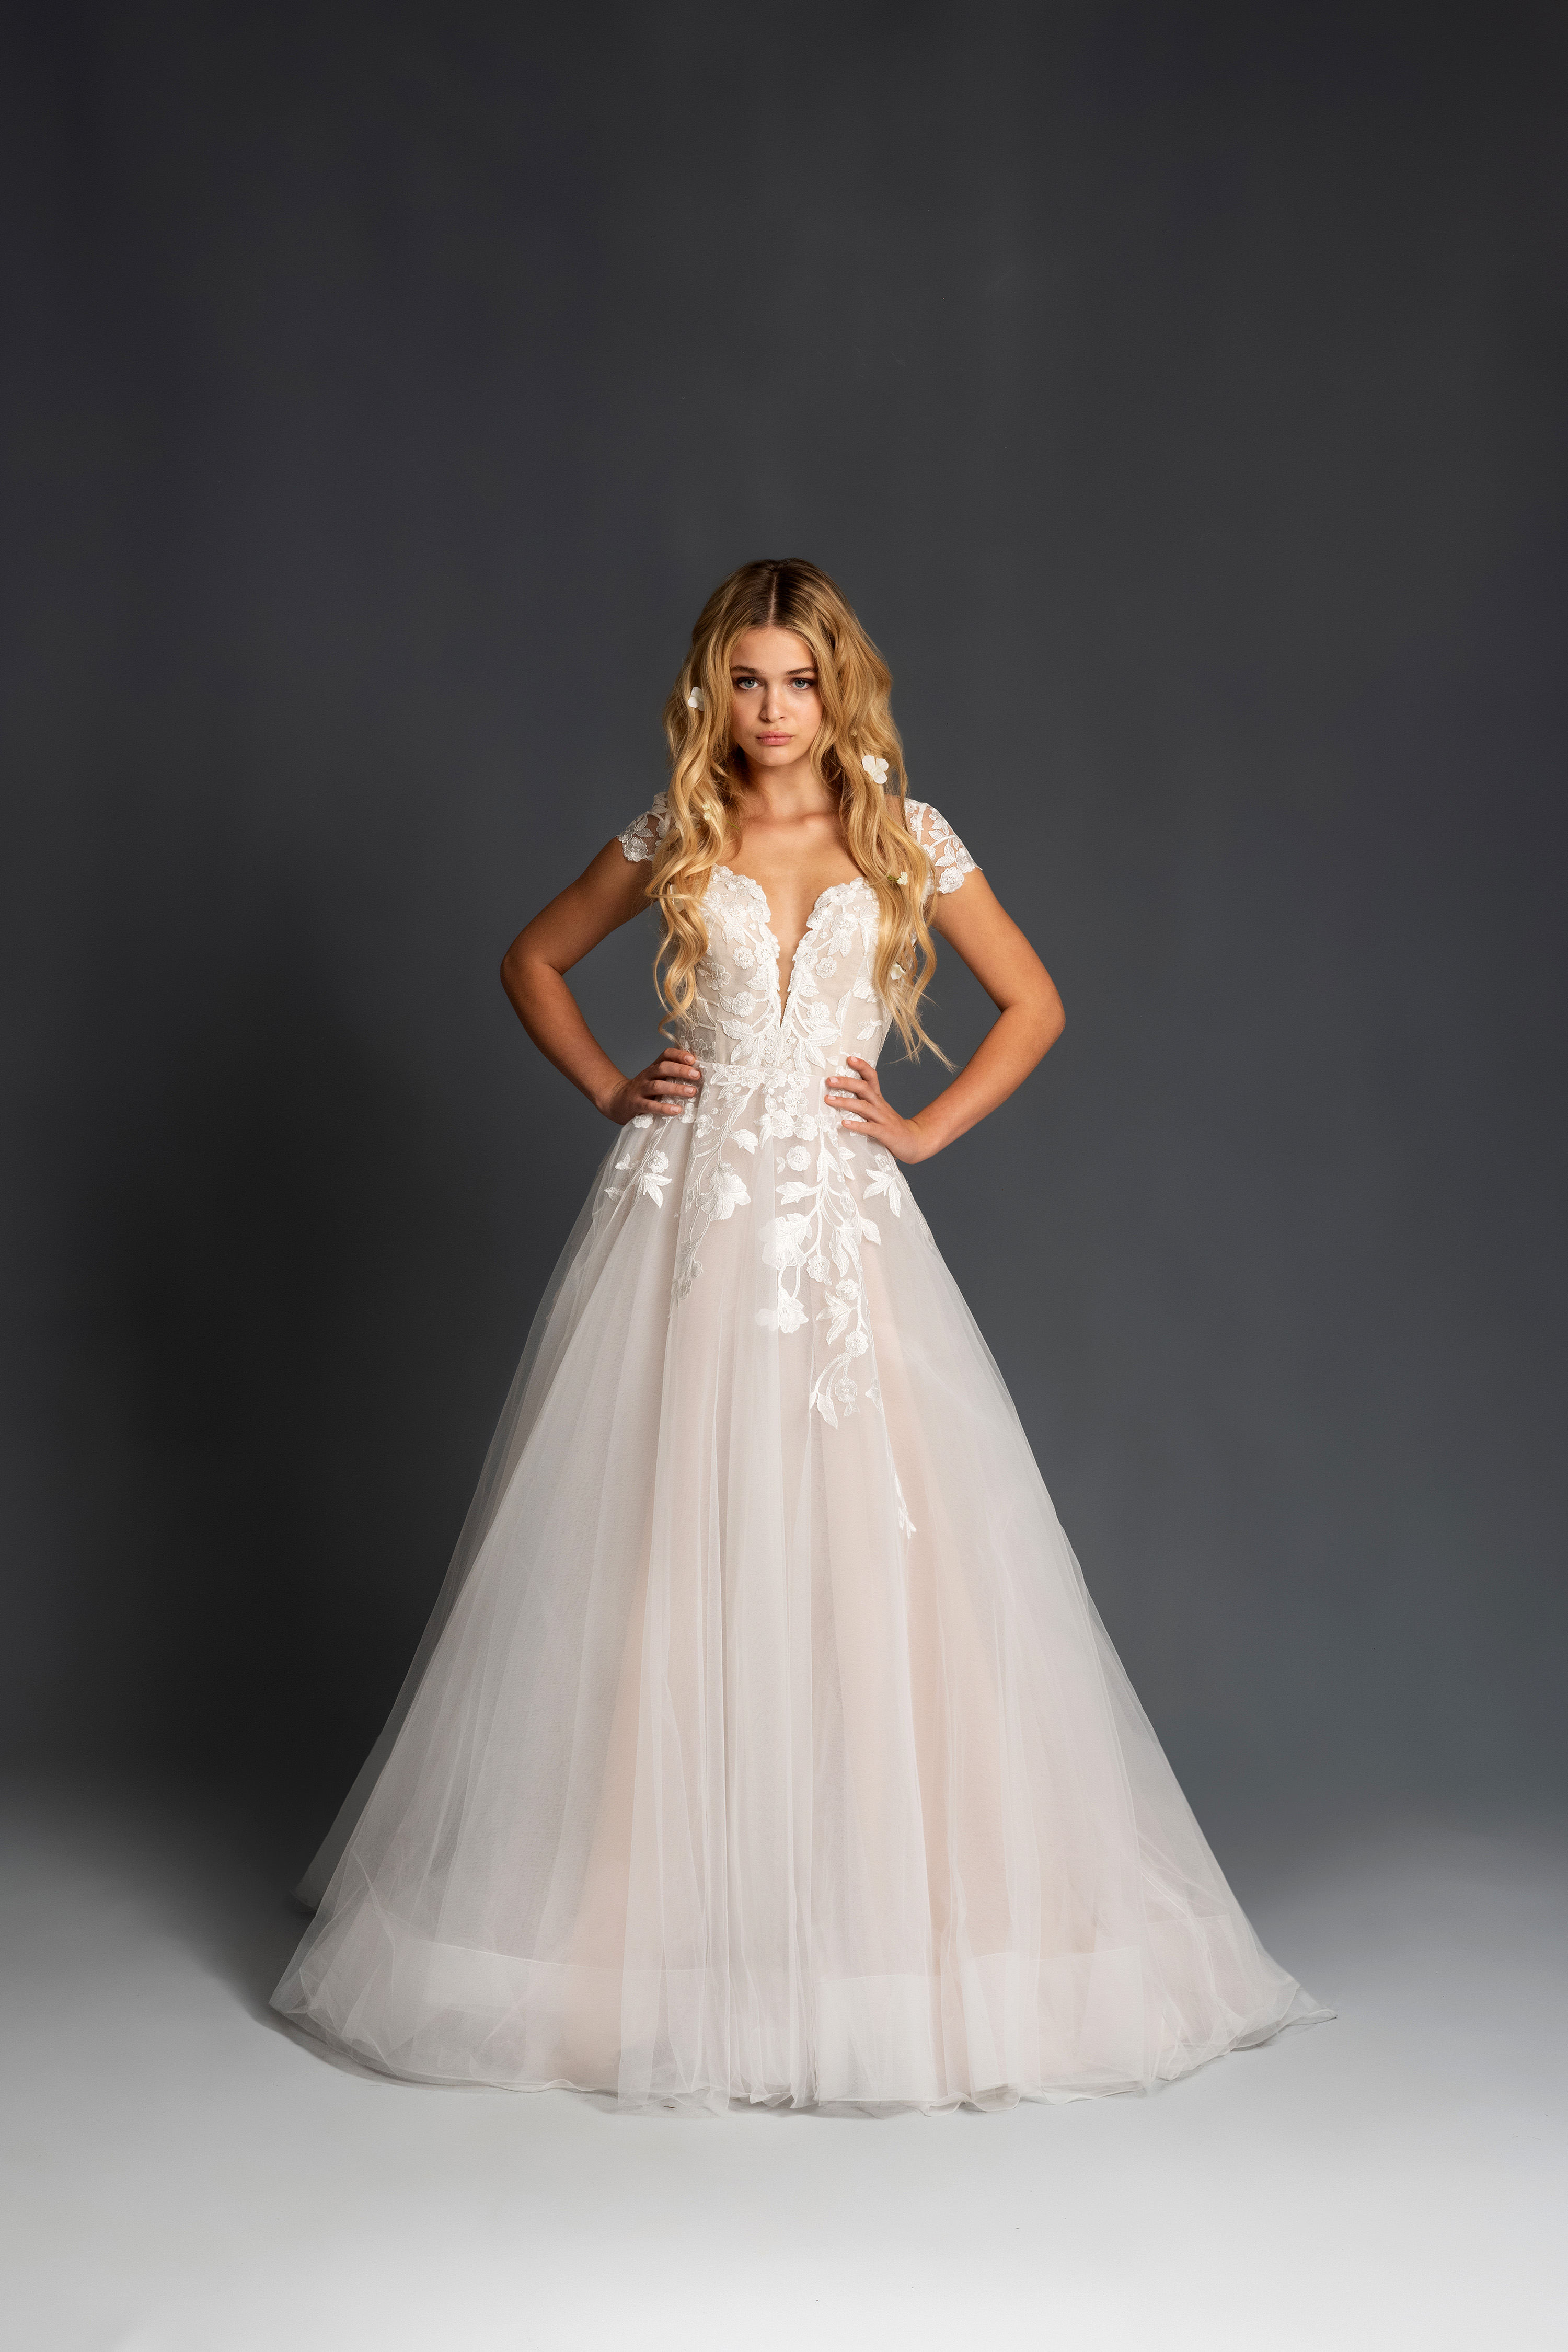 blush hayley paige cap sleeves floral applique tulle ballgown wedding dress spring 2020